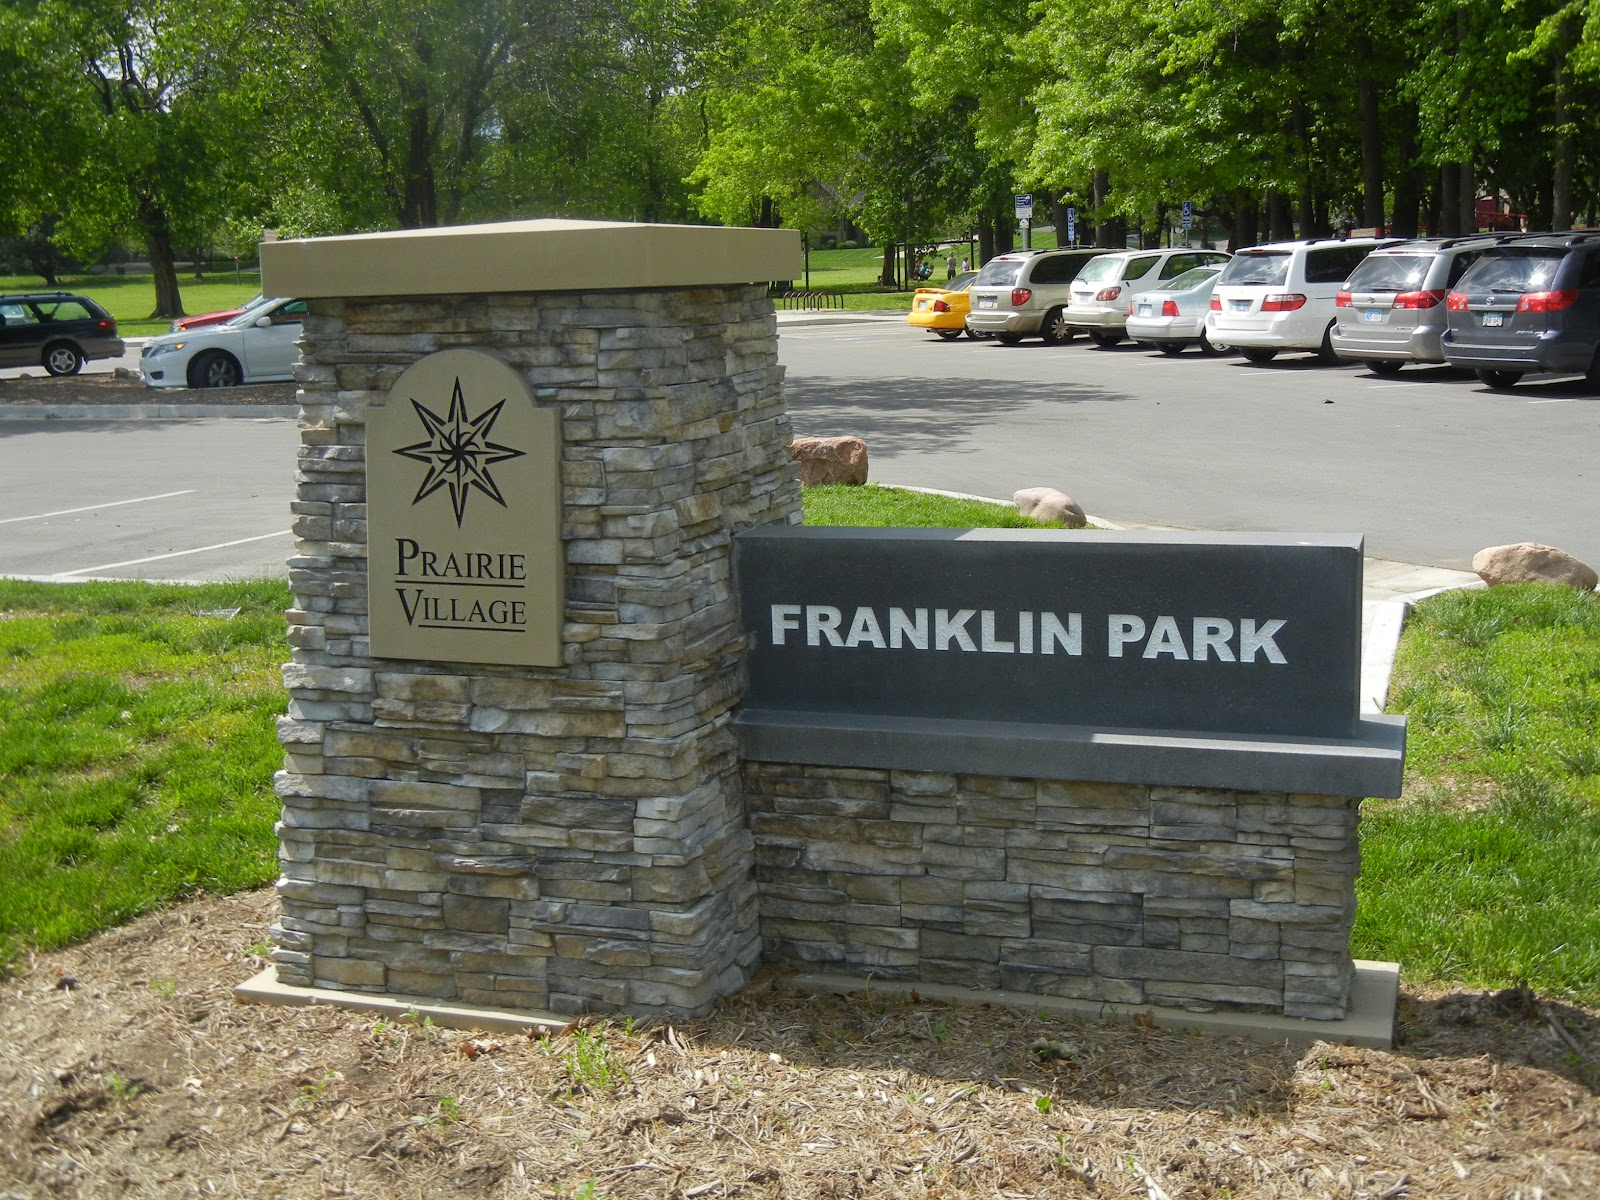 Kansas johnson county prairie village - Franklin Park Is One Of Twelve Parks In Prairie Village Ks In My Post About Buffalo Meadows I Found Lenexa Parks Ratings From An Area Construction